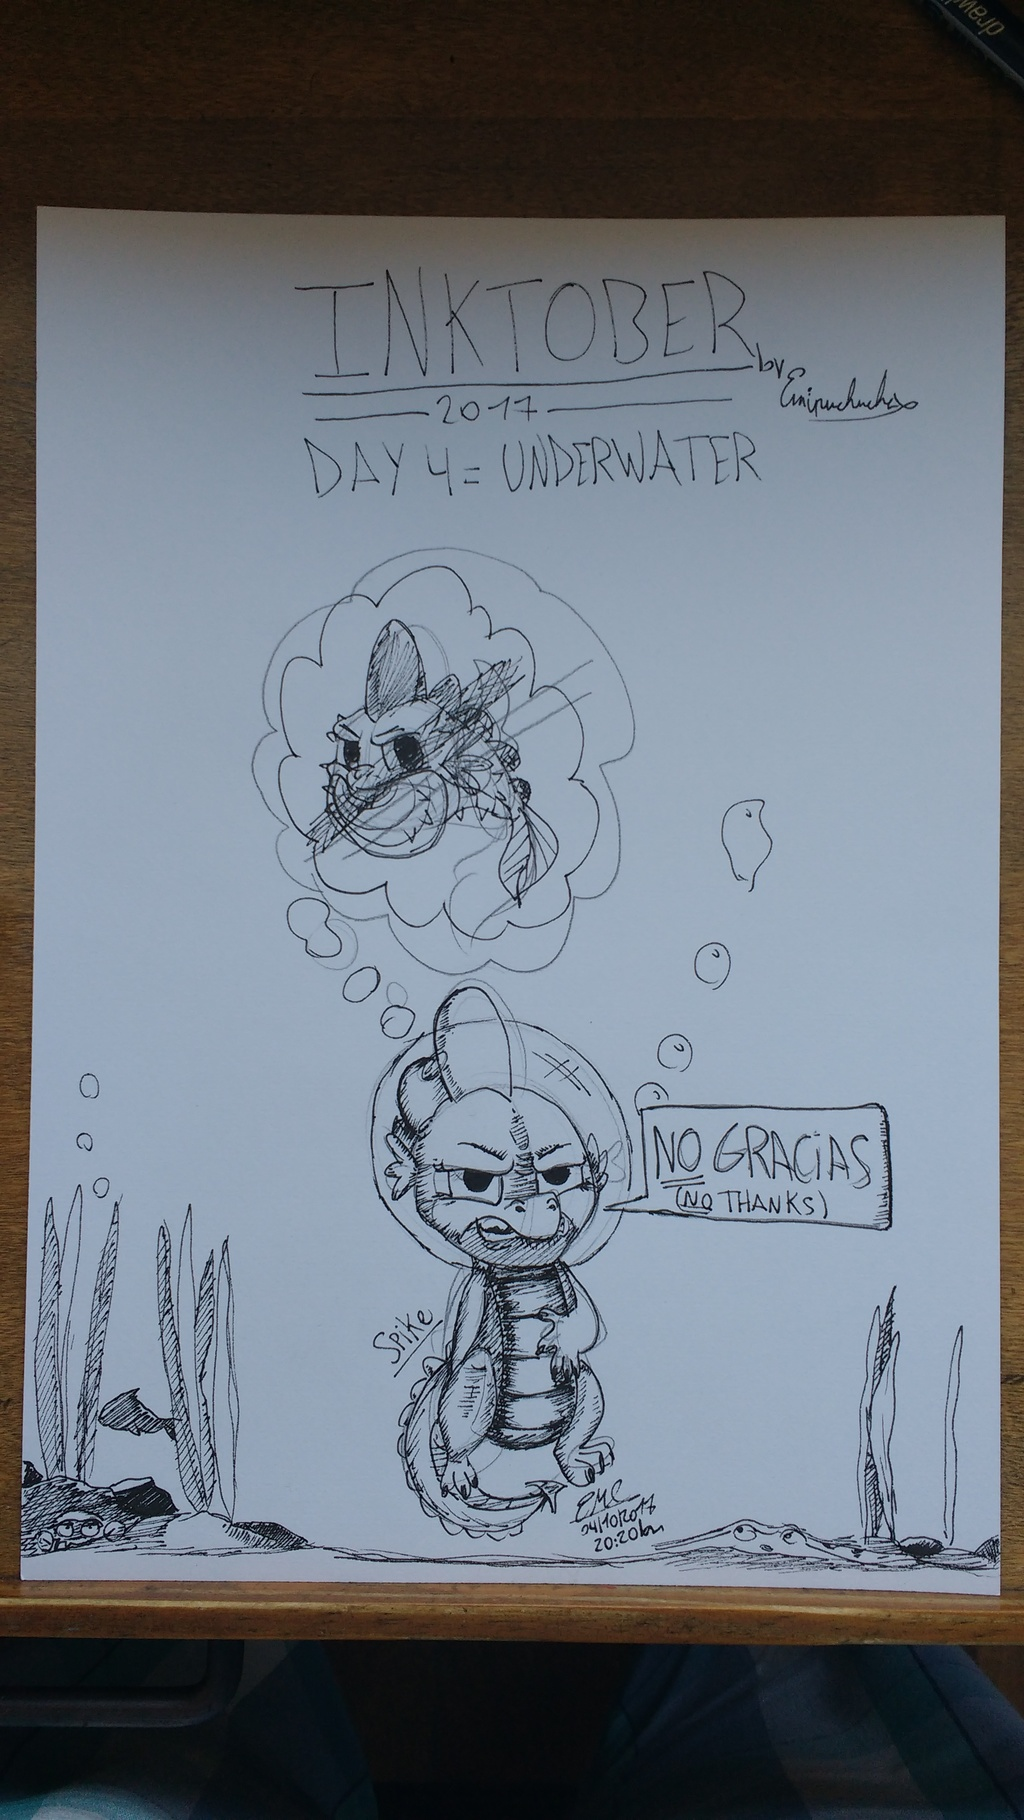 Most recent image: Inktober 2017: Day 4 - Underwater